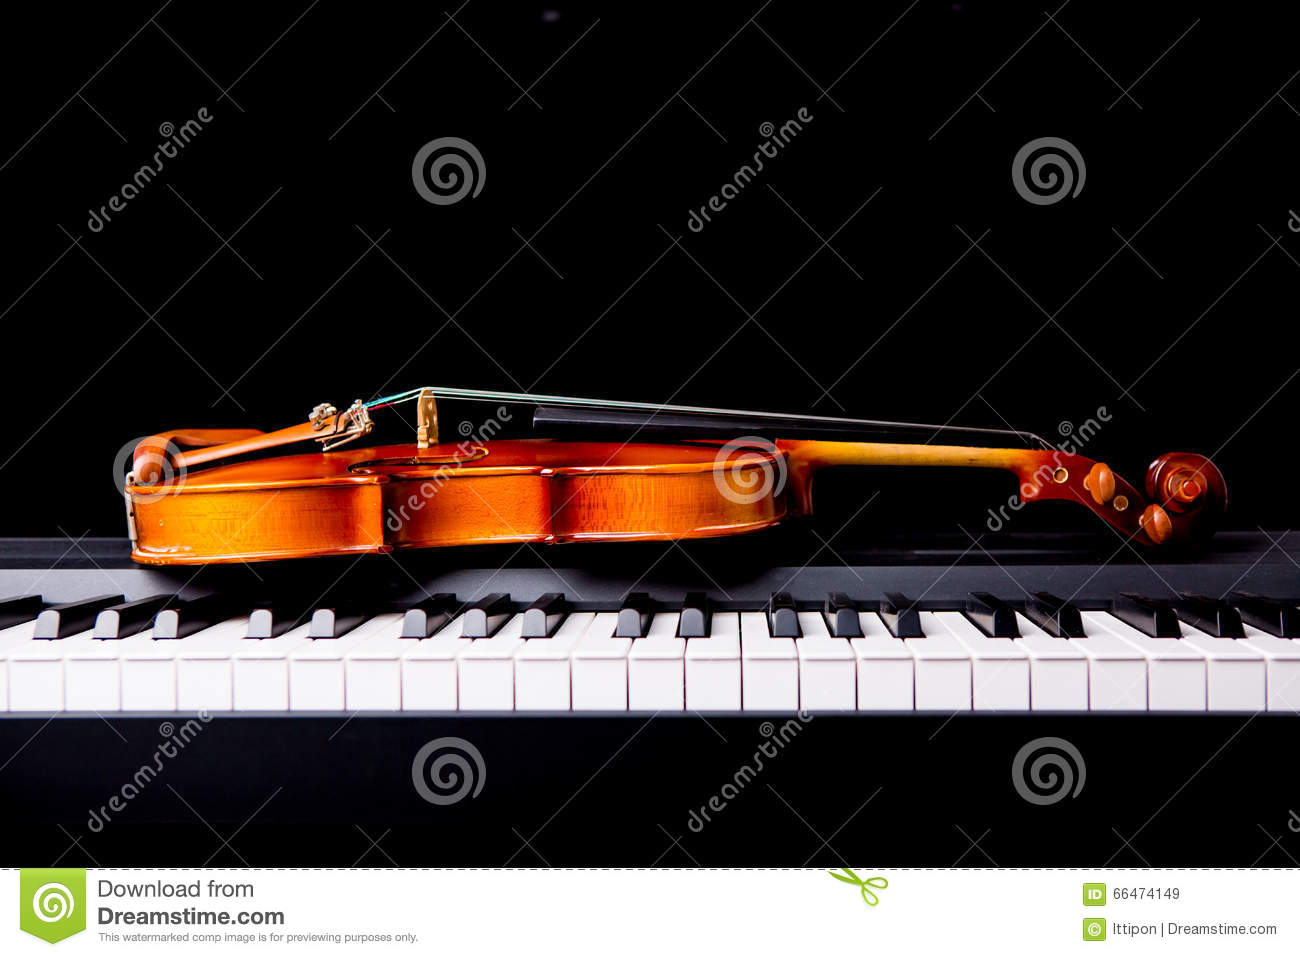 Violin on the piano stock image  Image of sound, instrumental - 66474149